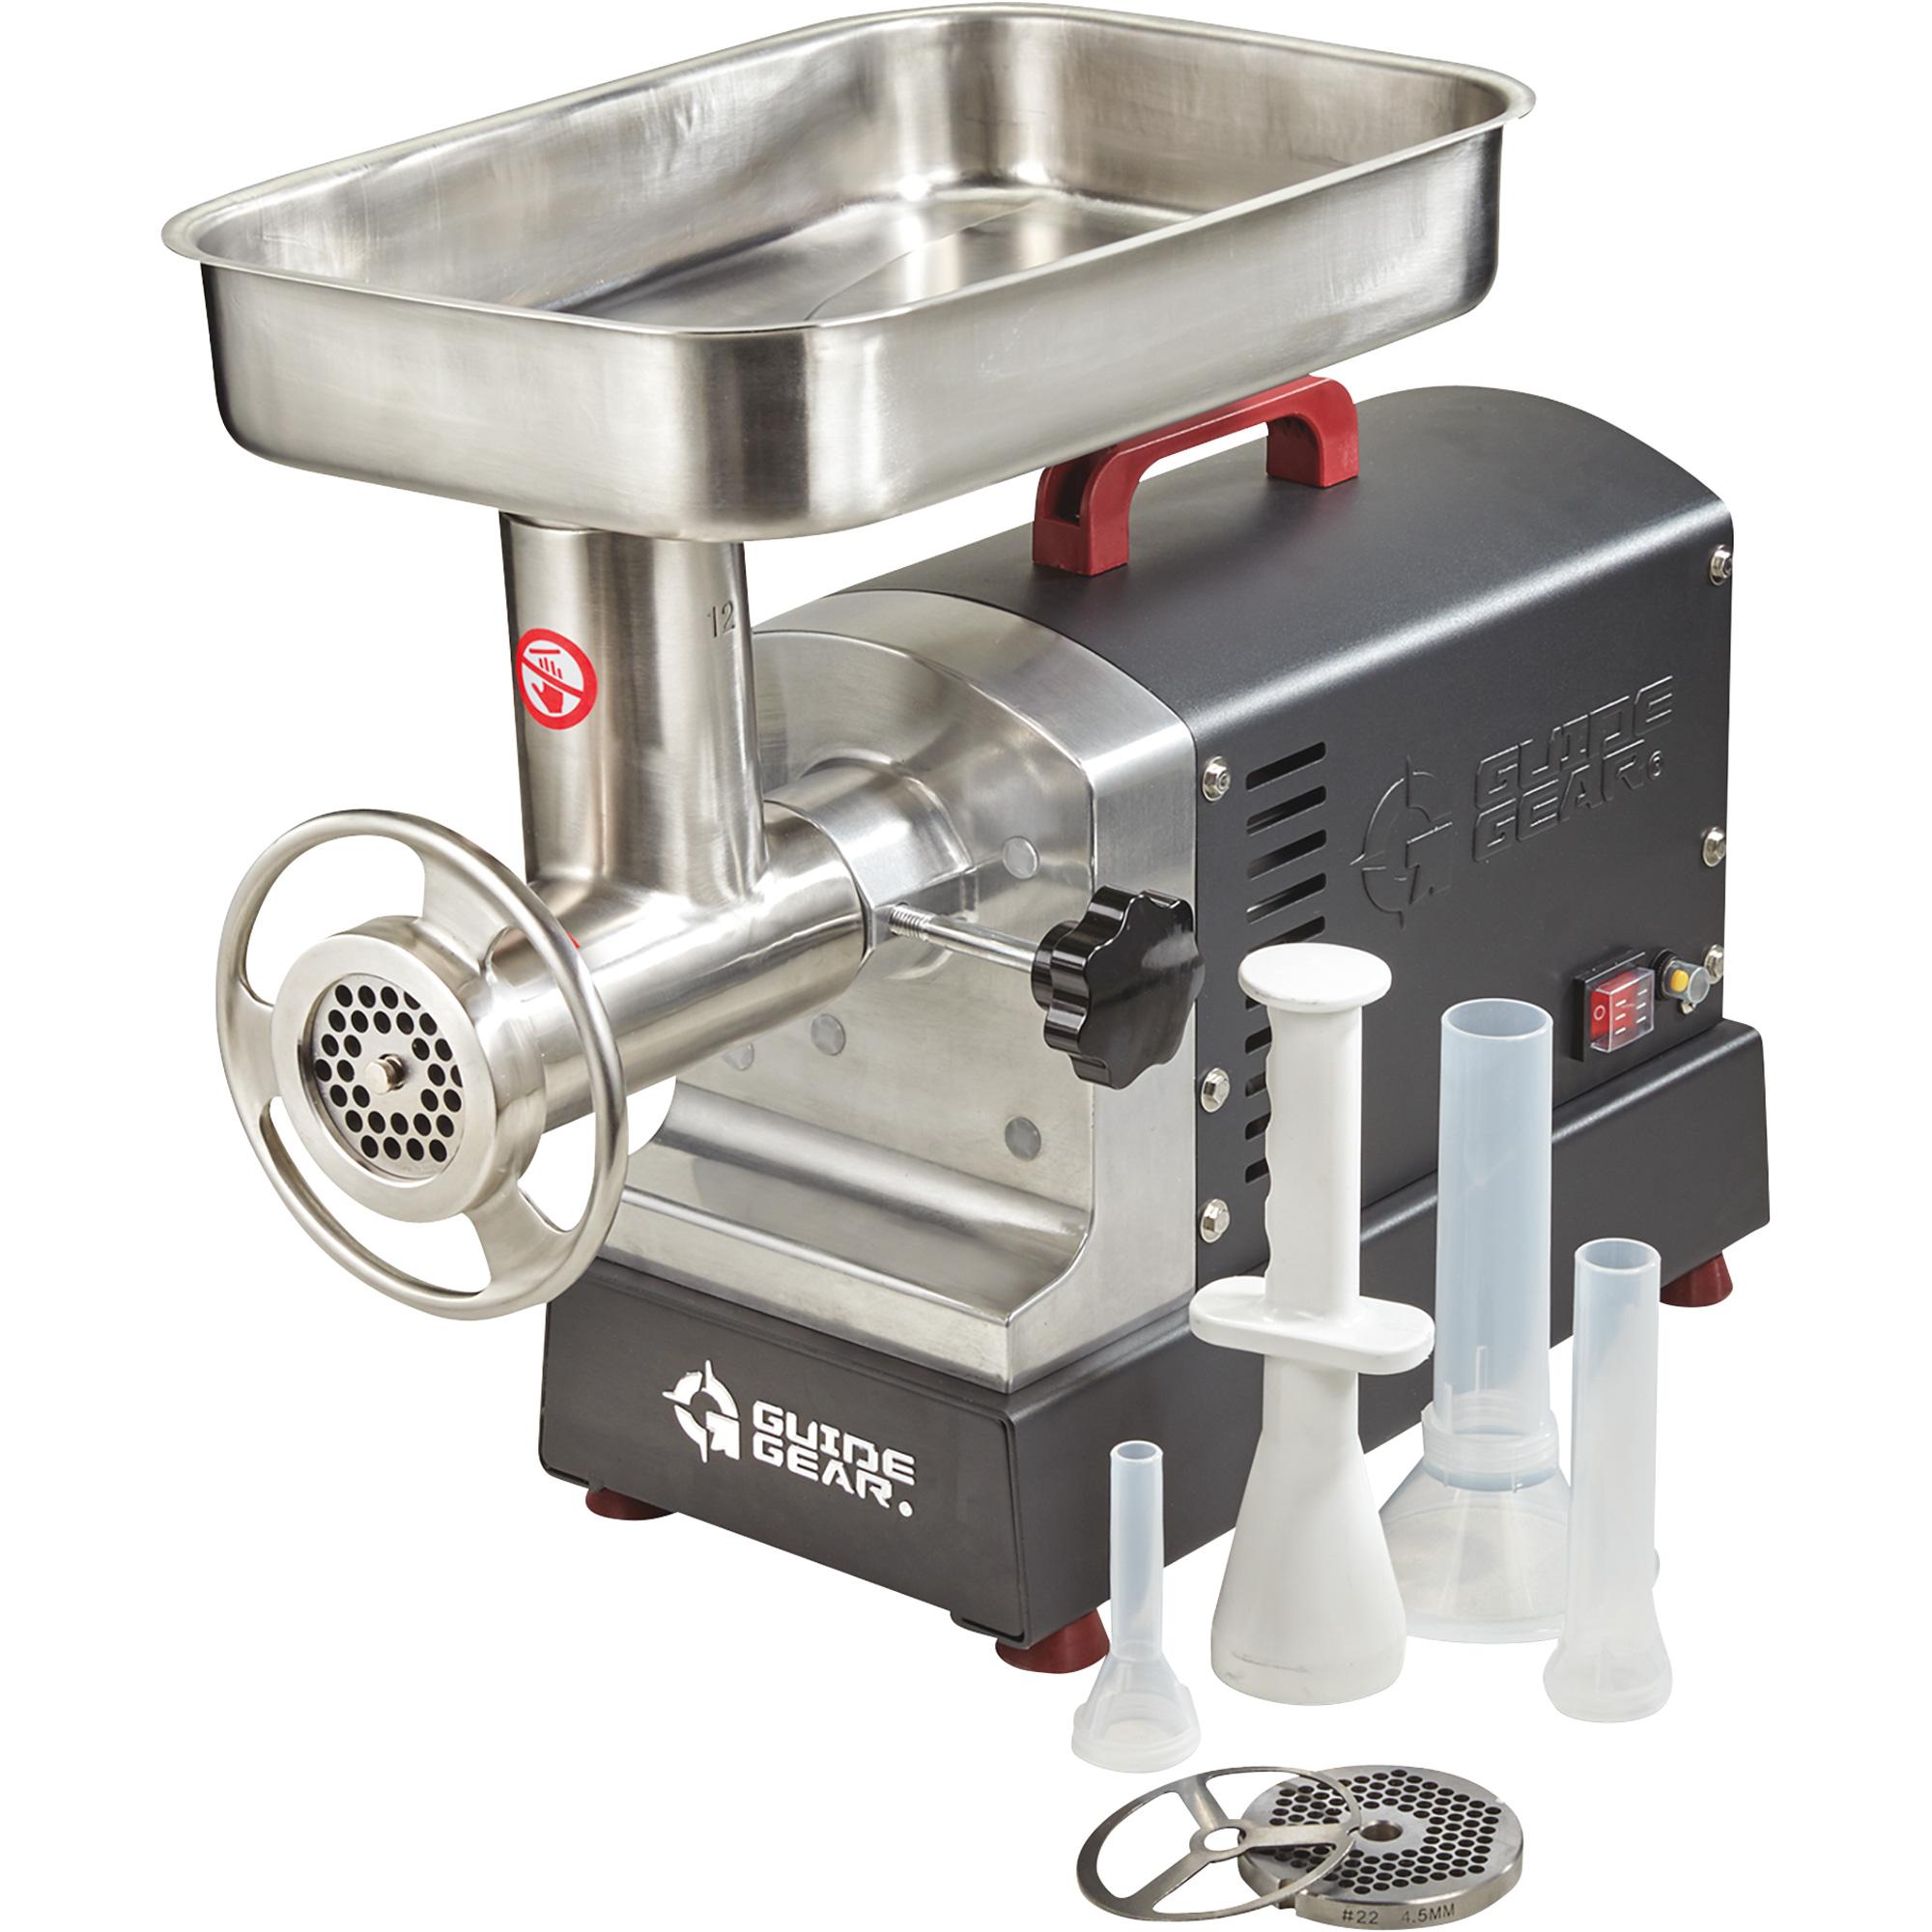 Guide Gear 22 Electric Meat Grinder 1 Hp Northern